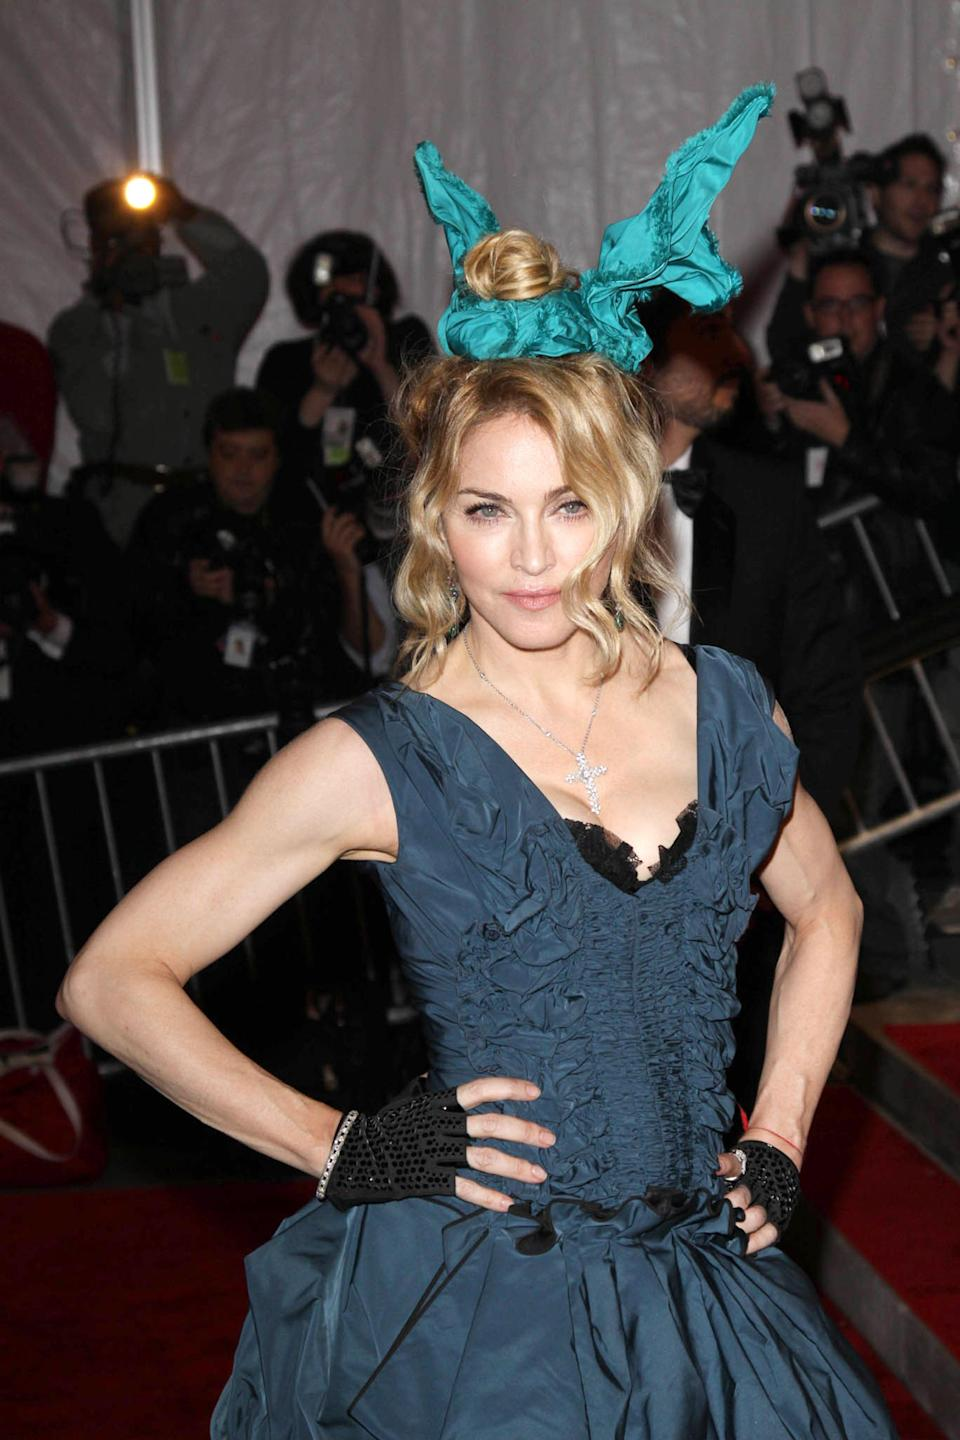 """<p>For the 2009 Met Gala (""""The Model as Muse: Embodying Fashion""""), she wore a <a href=""""https://www.thecut.com/2009/05/thoughts_on_madonnas_ingenious.html"""" rel=""""nofollow noopener"""" target=""""_blank"""" data-ylk=""""slk:headline-generating Marc Jacobs-designed Louis Vuitton ruched minidress"""" class=""""link rapid-noclick-resp"""">headline-generating Marc Jacobs-designed Louis Vuitton ruched minidress</a>, styled with dominatrix boots, turquoise bunny ears, and, yep, a relatively dainty crucifix. <a href=""""https://allaboutmadonna.com/madonna-interviews/madonna-interview-new-york-times-june-29-1986"""" rel=""""nofollow noopener"""" target=""""_blank"""" data-ylk=""""slk:Mused the Material Girl to The New York Times"""" class=""""link rapid-noclick-resp"""">Mused the Material Girl to <em>The New York Times</em></a> of her earliest fashion moments: ''When you go to Catholic school, you have to wear uniforms, and everything is decided for you. Since you have no choice but to wear your uniform, you go out of your way to do things that are different in order to stand out.""""</p><span class=""""copyright"""">Photo: Philip Ramey/Corbis/Getty Images.</span>"""